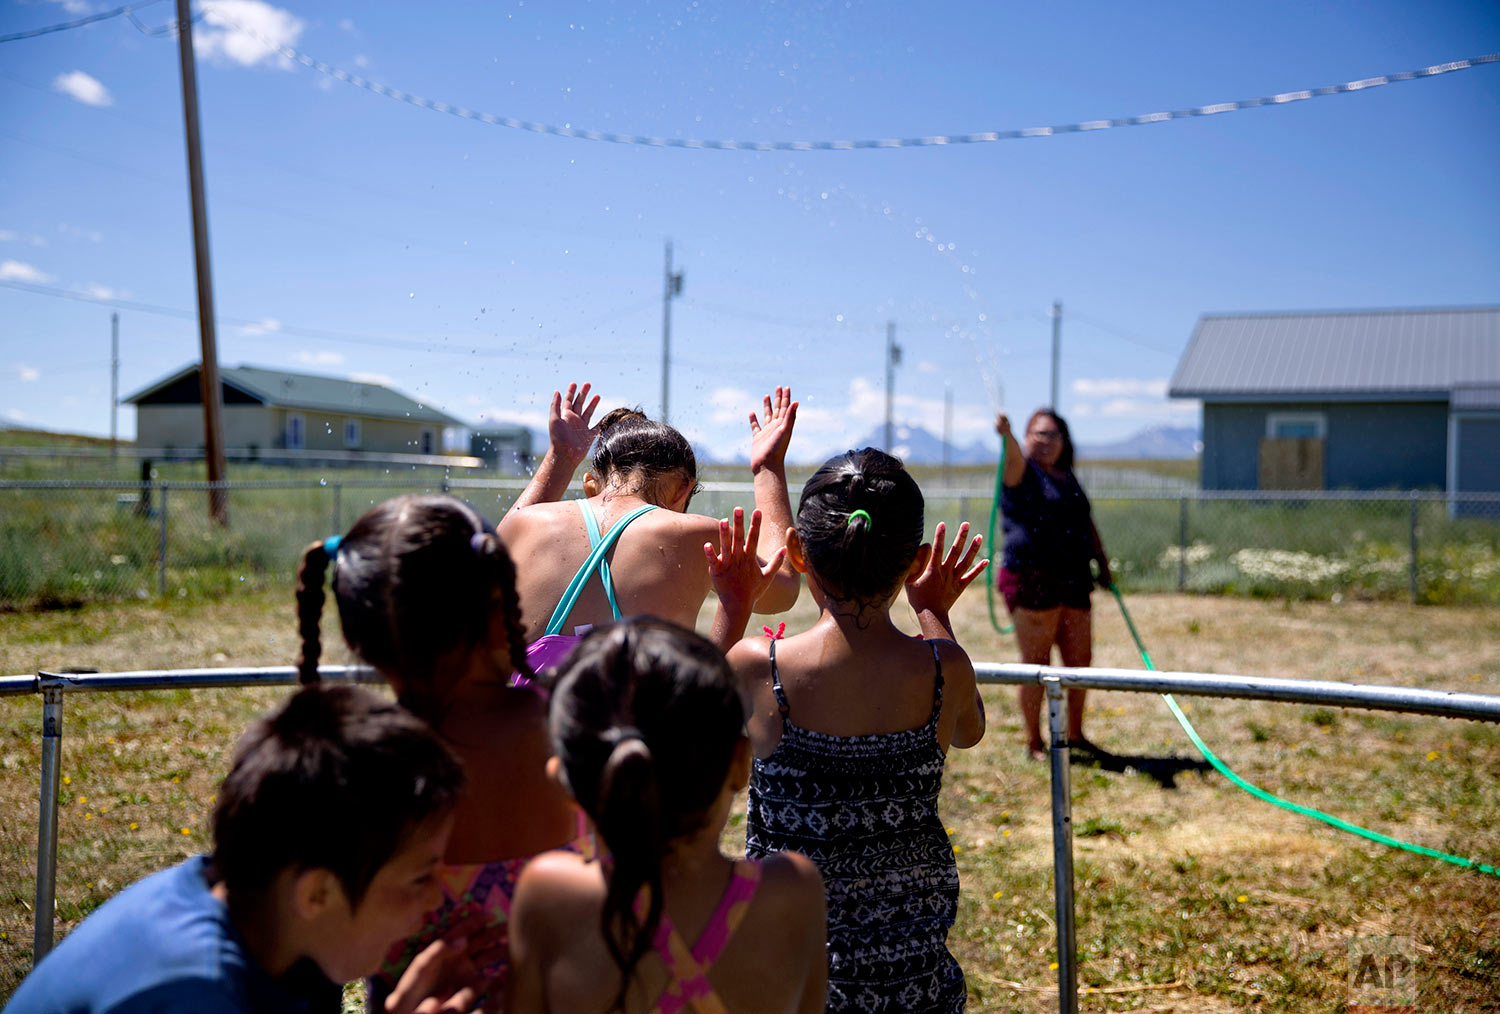 """Tyisha ArrowTop Knot, right, sprays her nieces and nephews with a garden hose while on the Blackfeet Indian Reservation in Browning, Mont., July 12, 2018. """"We've always been a cautious family,"""" she said of watching out for the children in light of recent disappearances of Native American women. """"The world is just getting worse.""""(AP Photo/David Goldman)"""